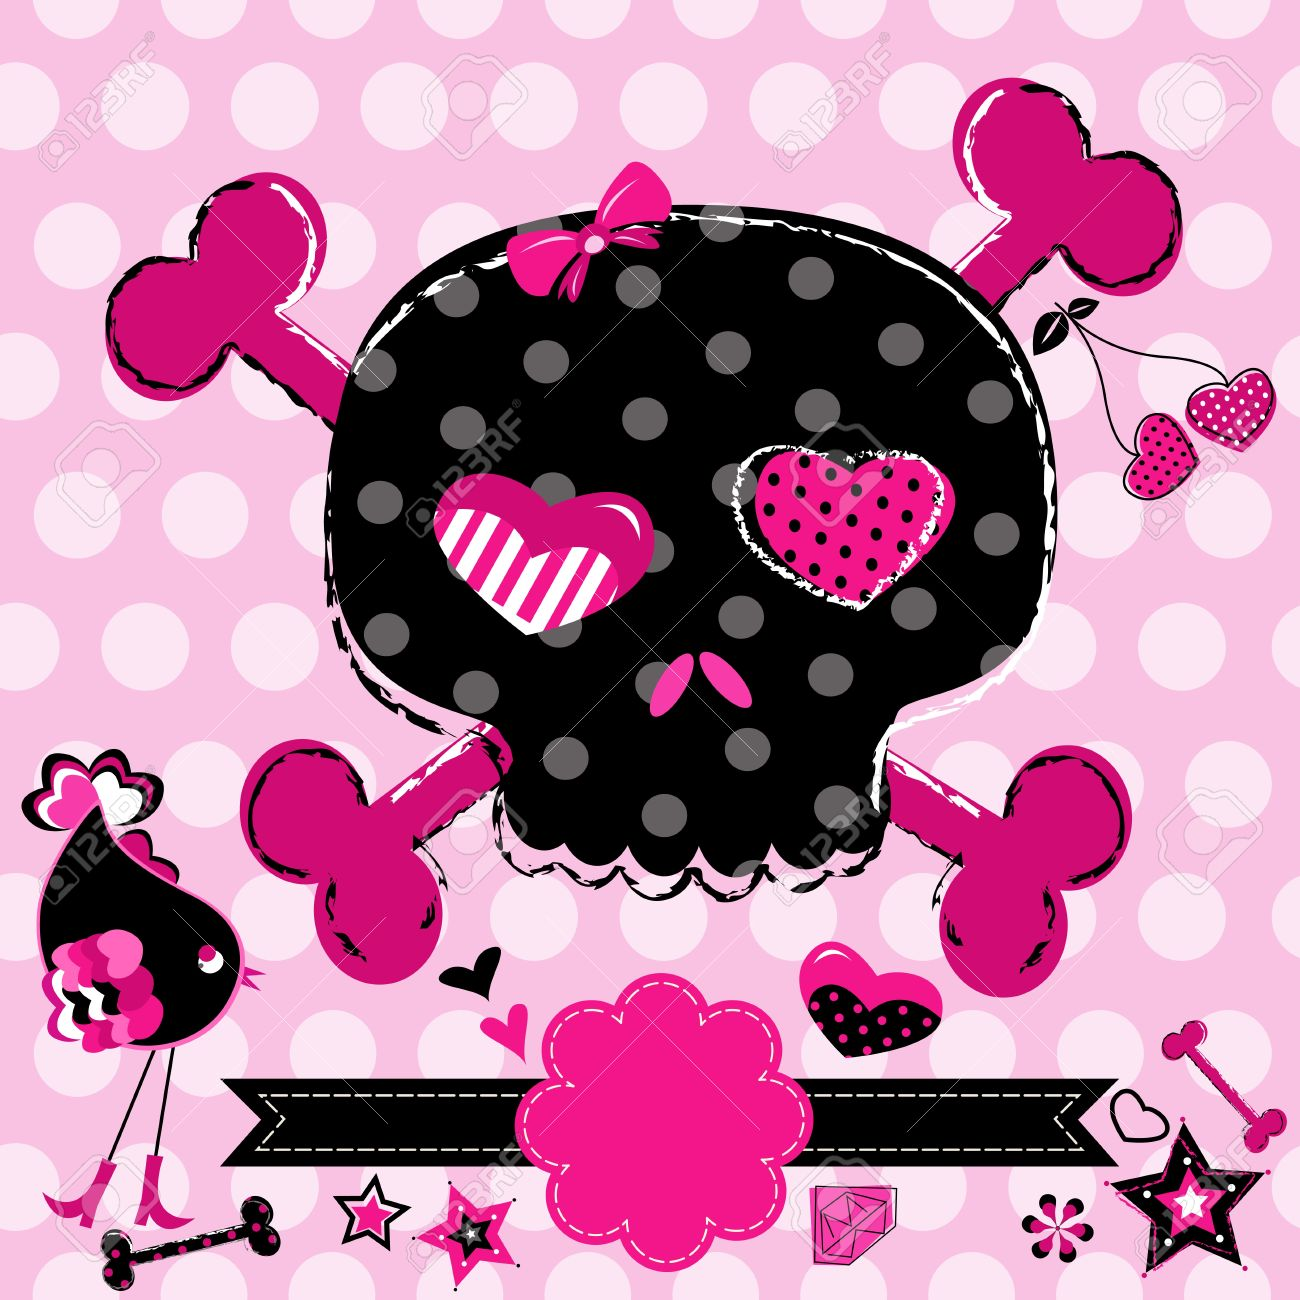 Ssckull clipart pink #14